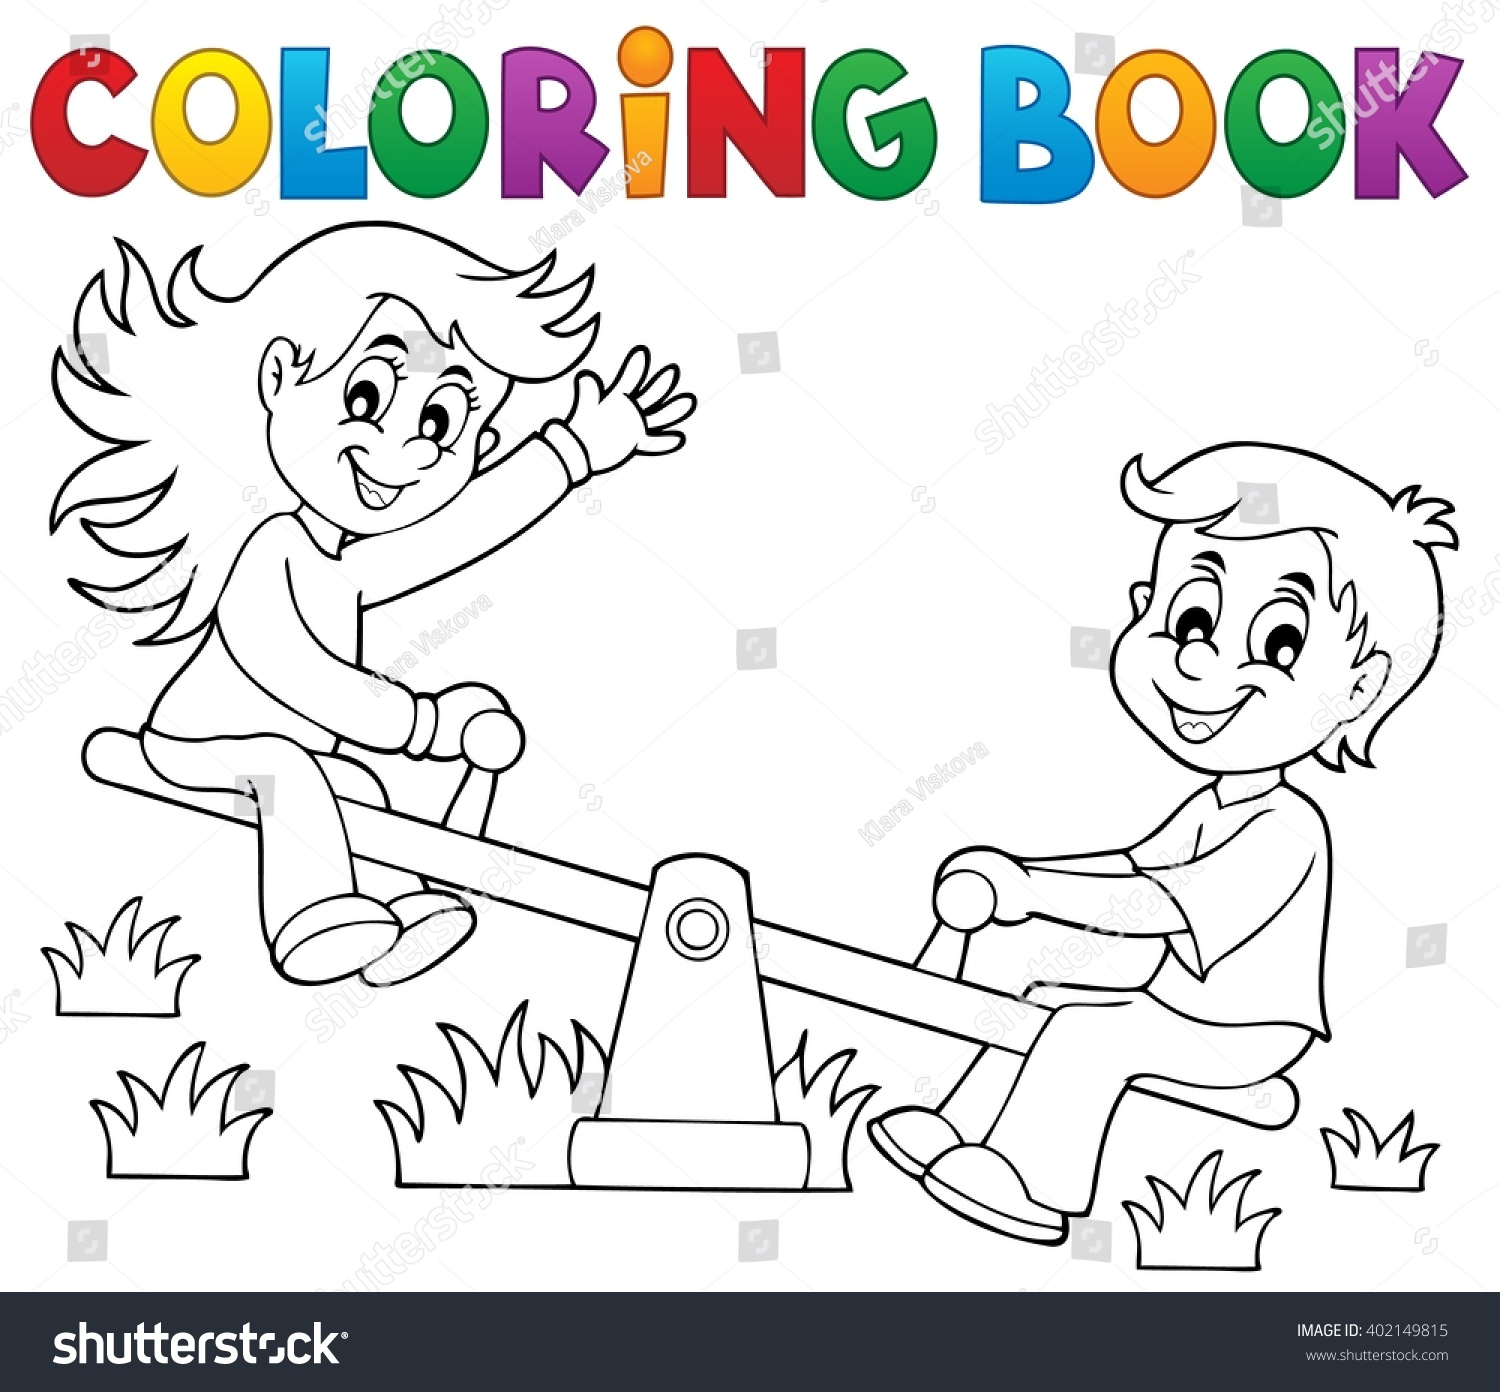 coloring book children on seesaw theme 1 eps10 vector illustration